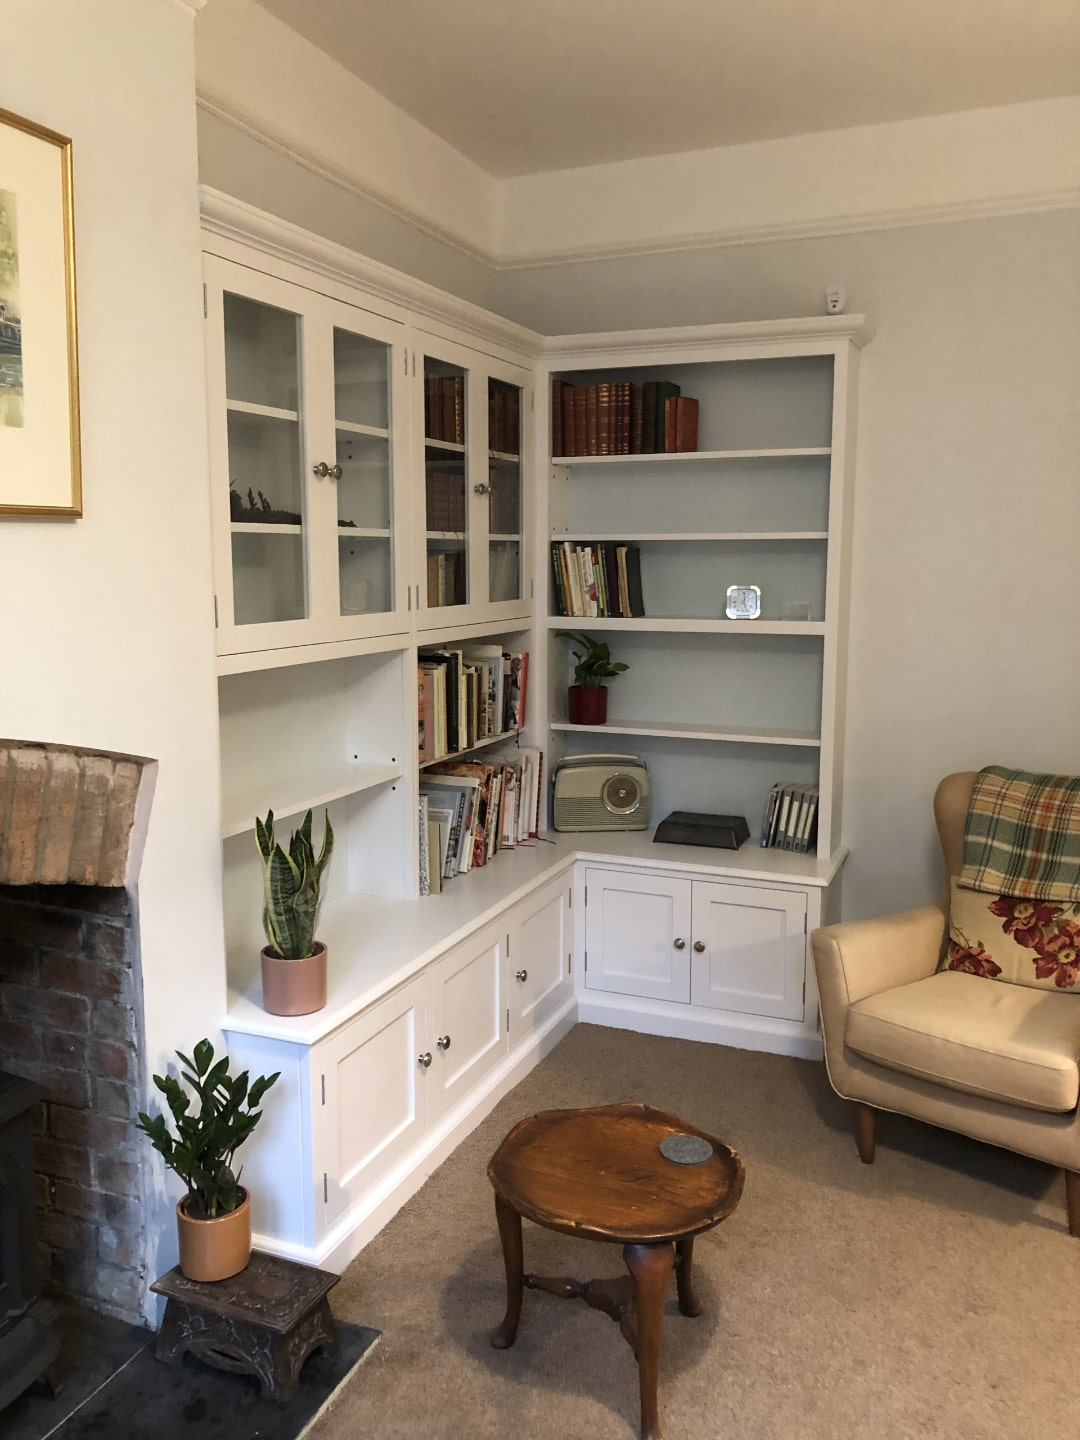 A bespoke bookcase nestled in the corner of a cozy room.